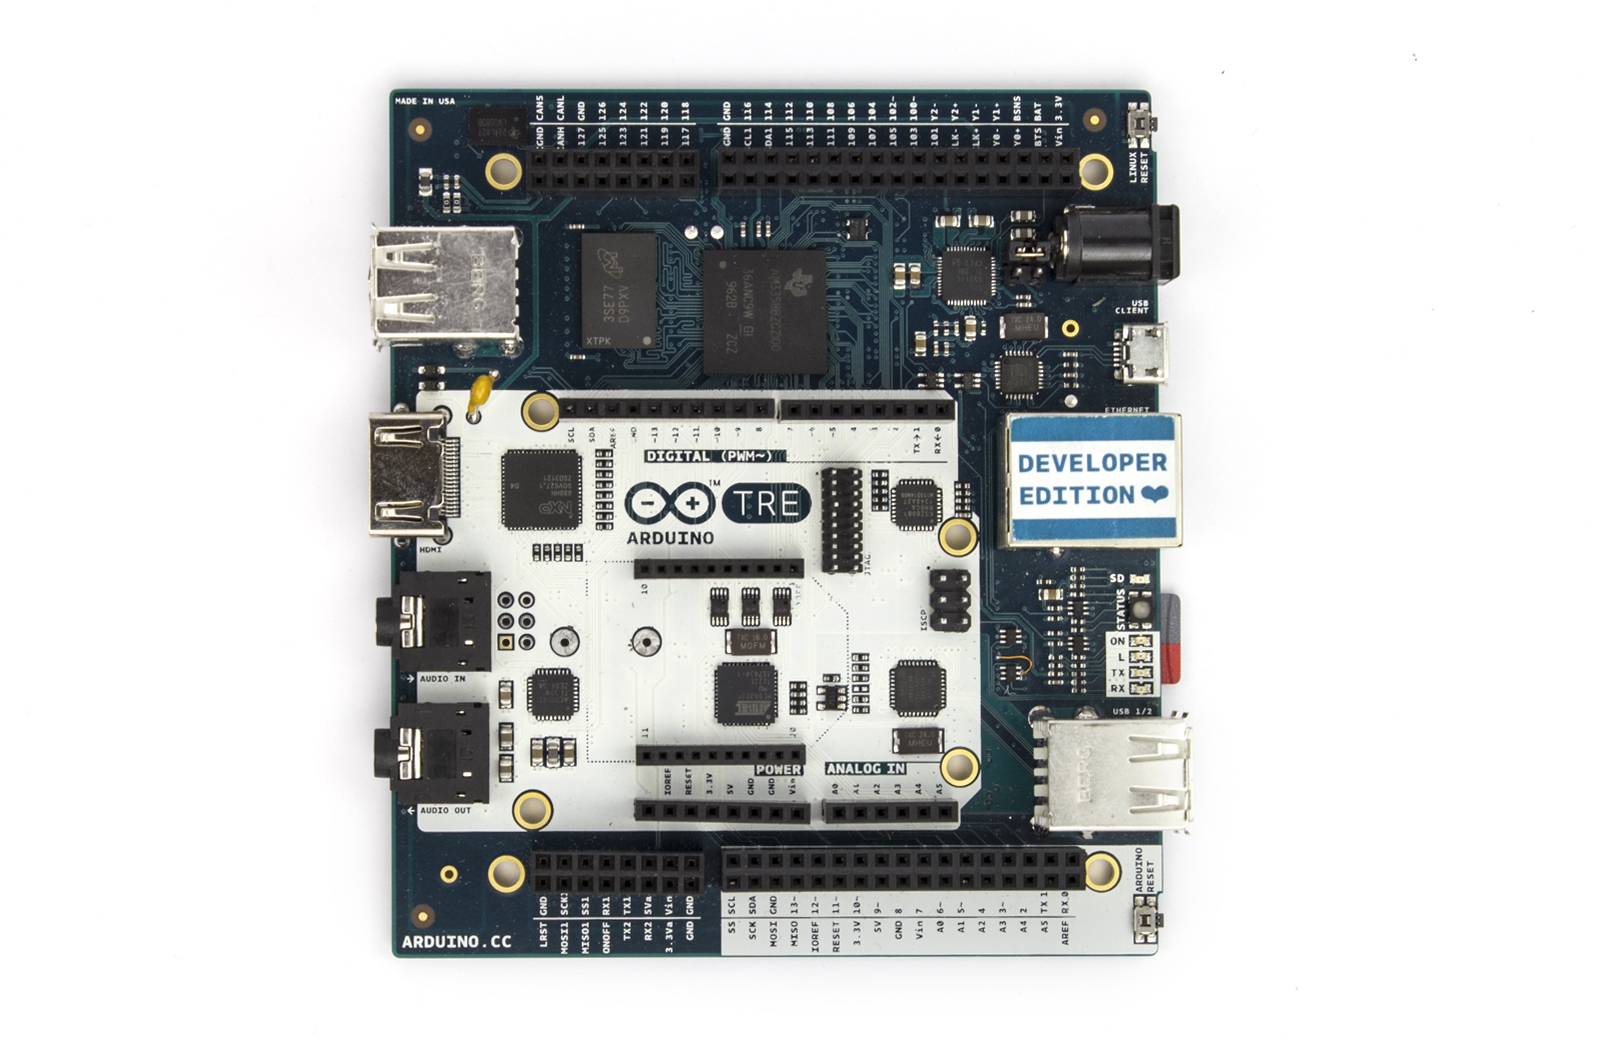 Arduino tre dev edition is now available